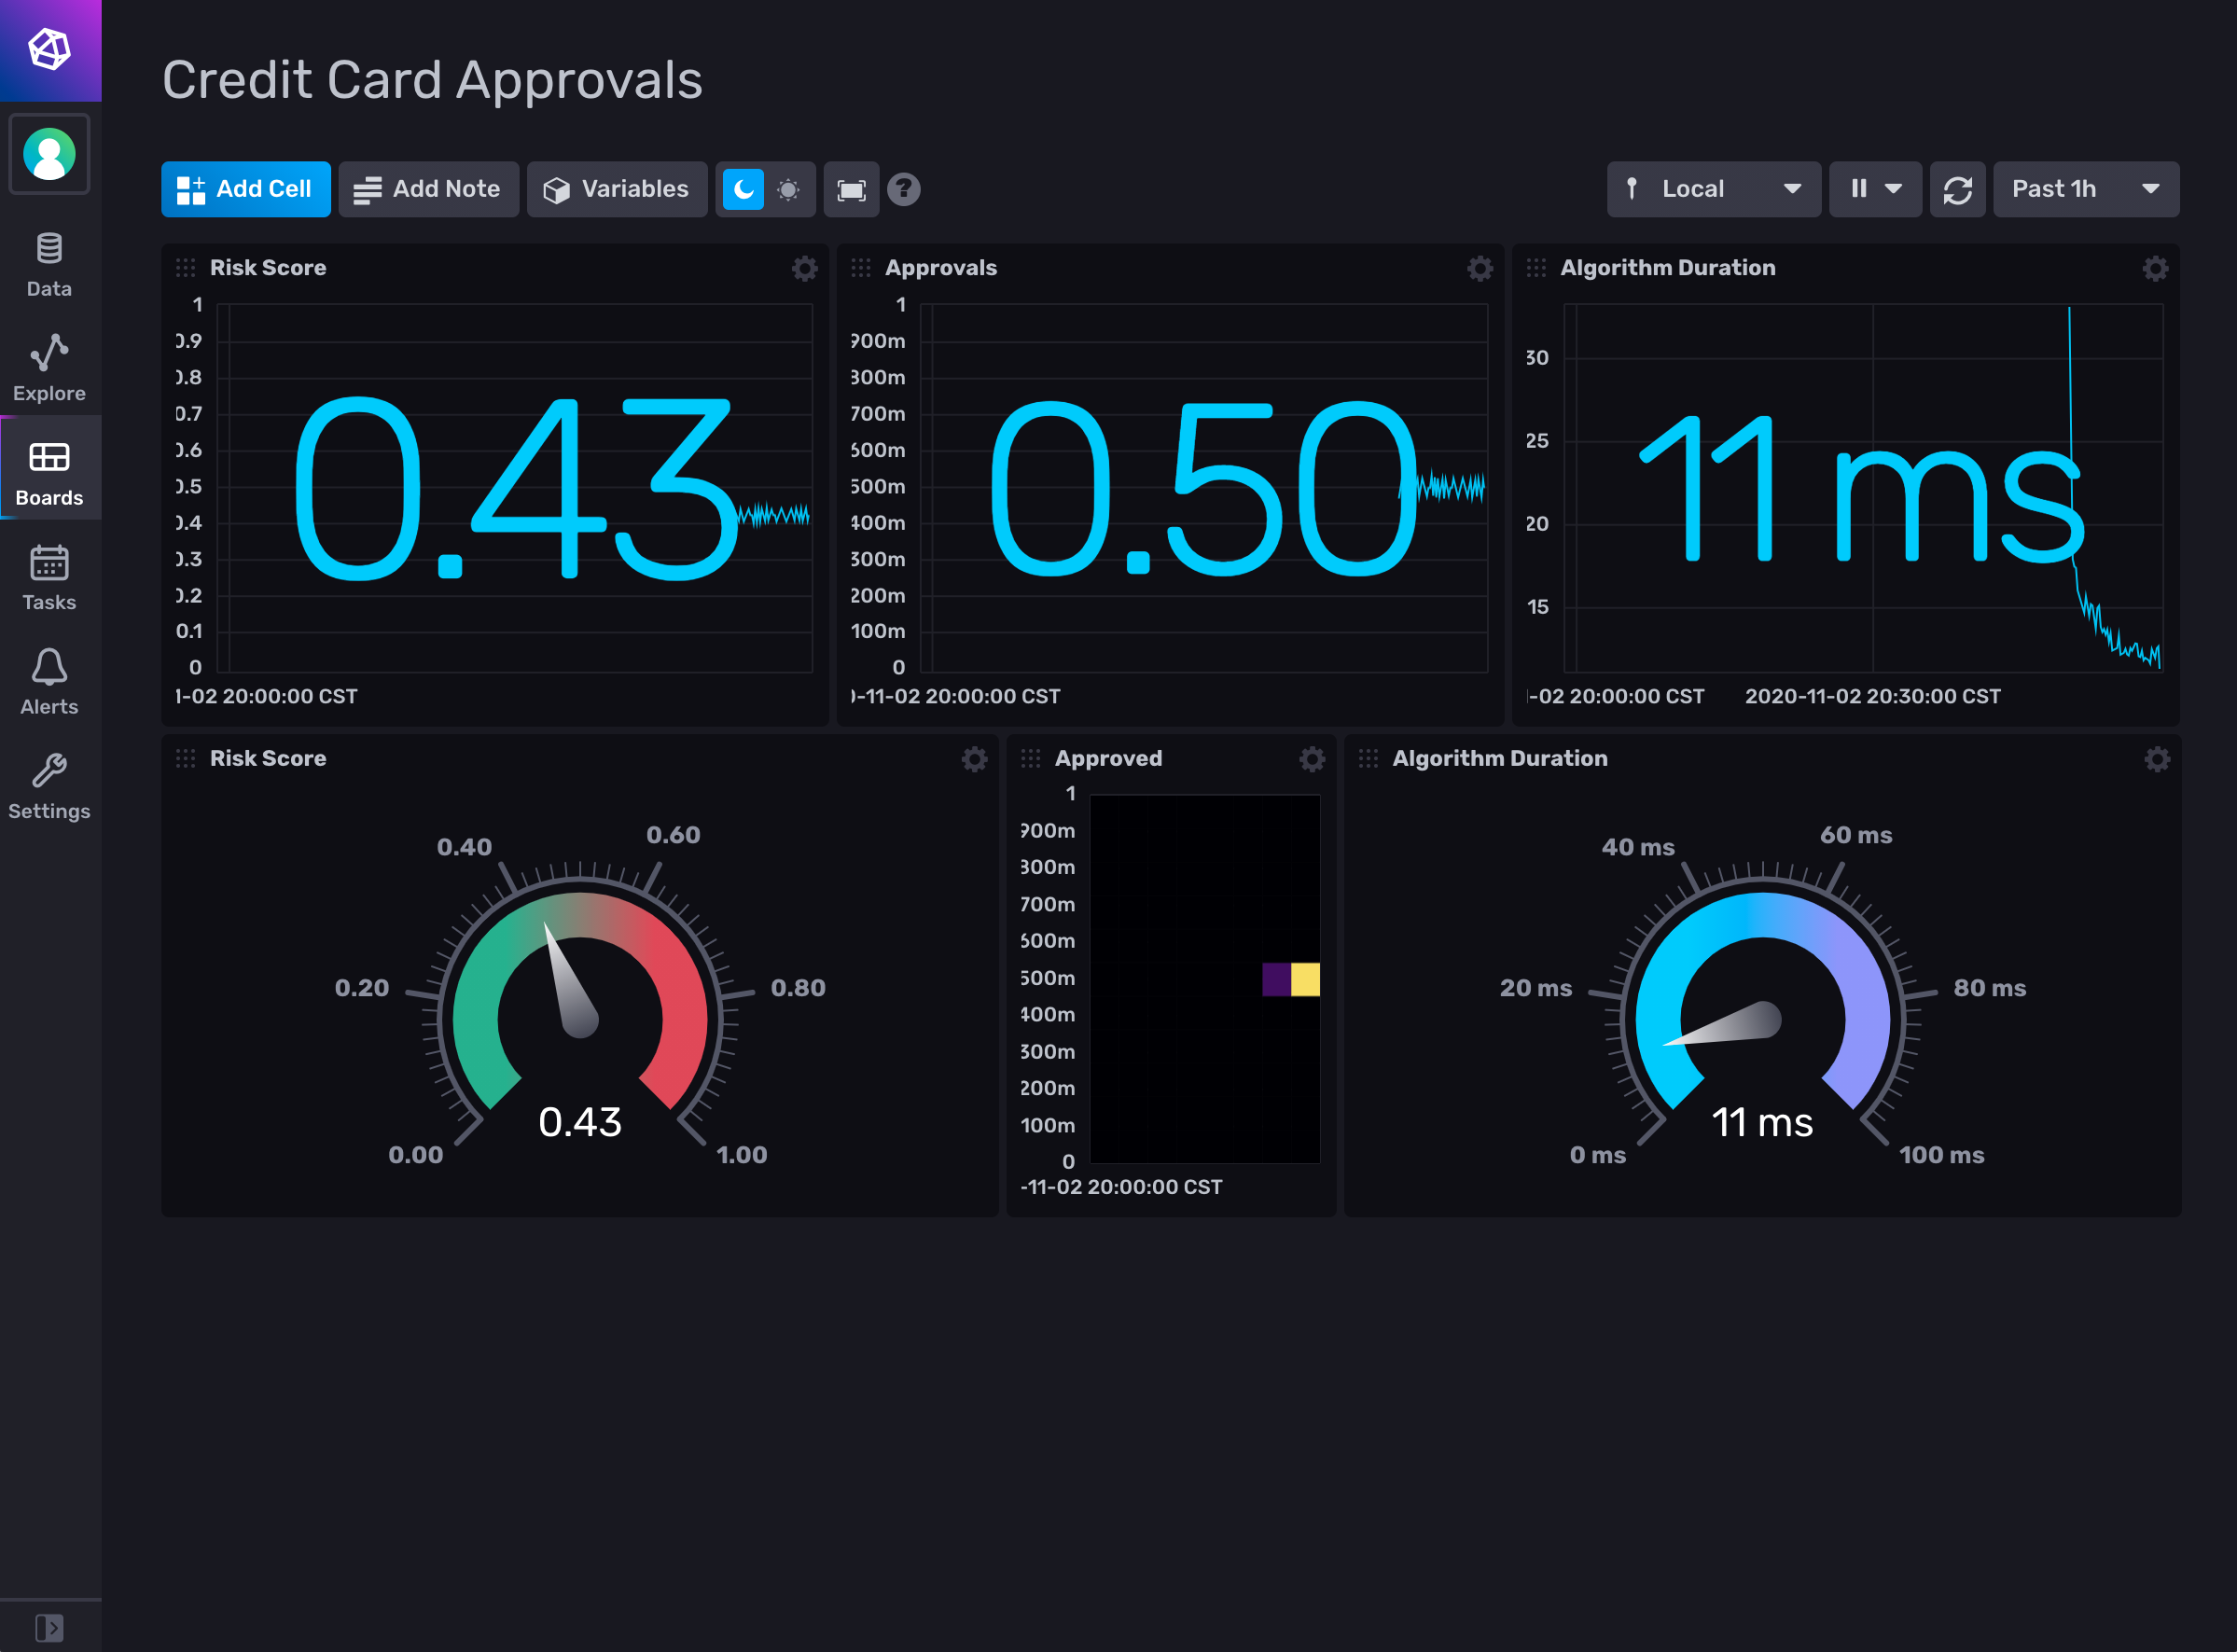 InfluxDB dashboard view with additional cells